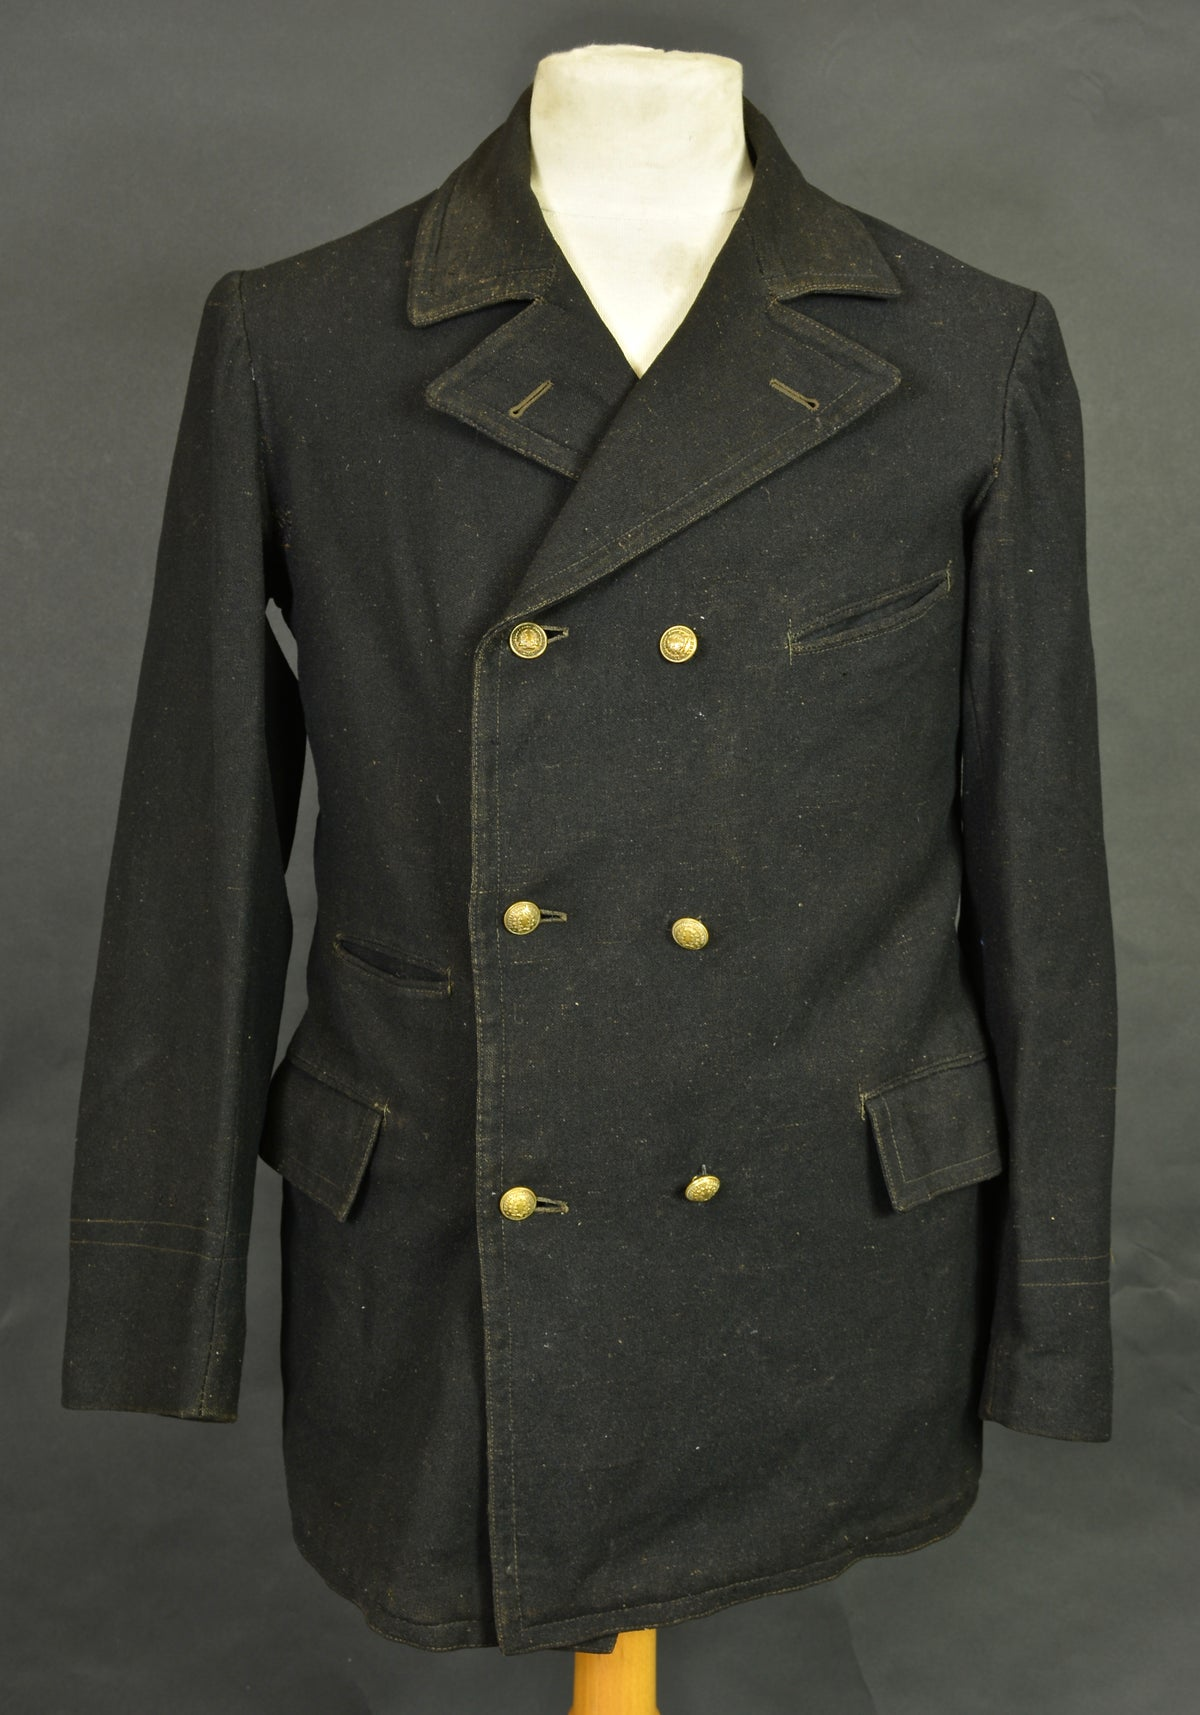 Image of 1900'S FRENCH ENGINEER DOUBLE BREASTED WOOLEN JACKET